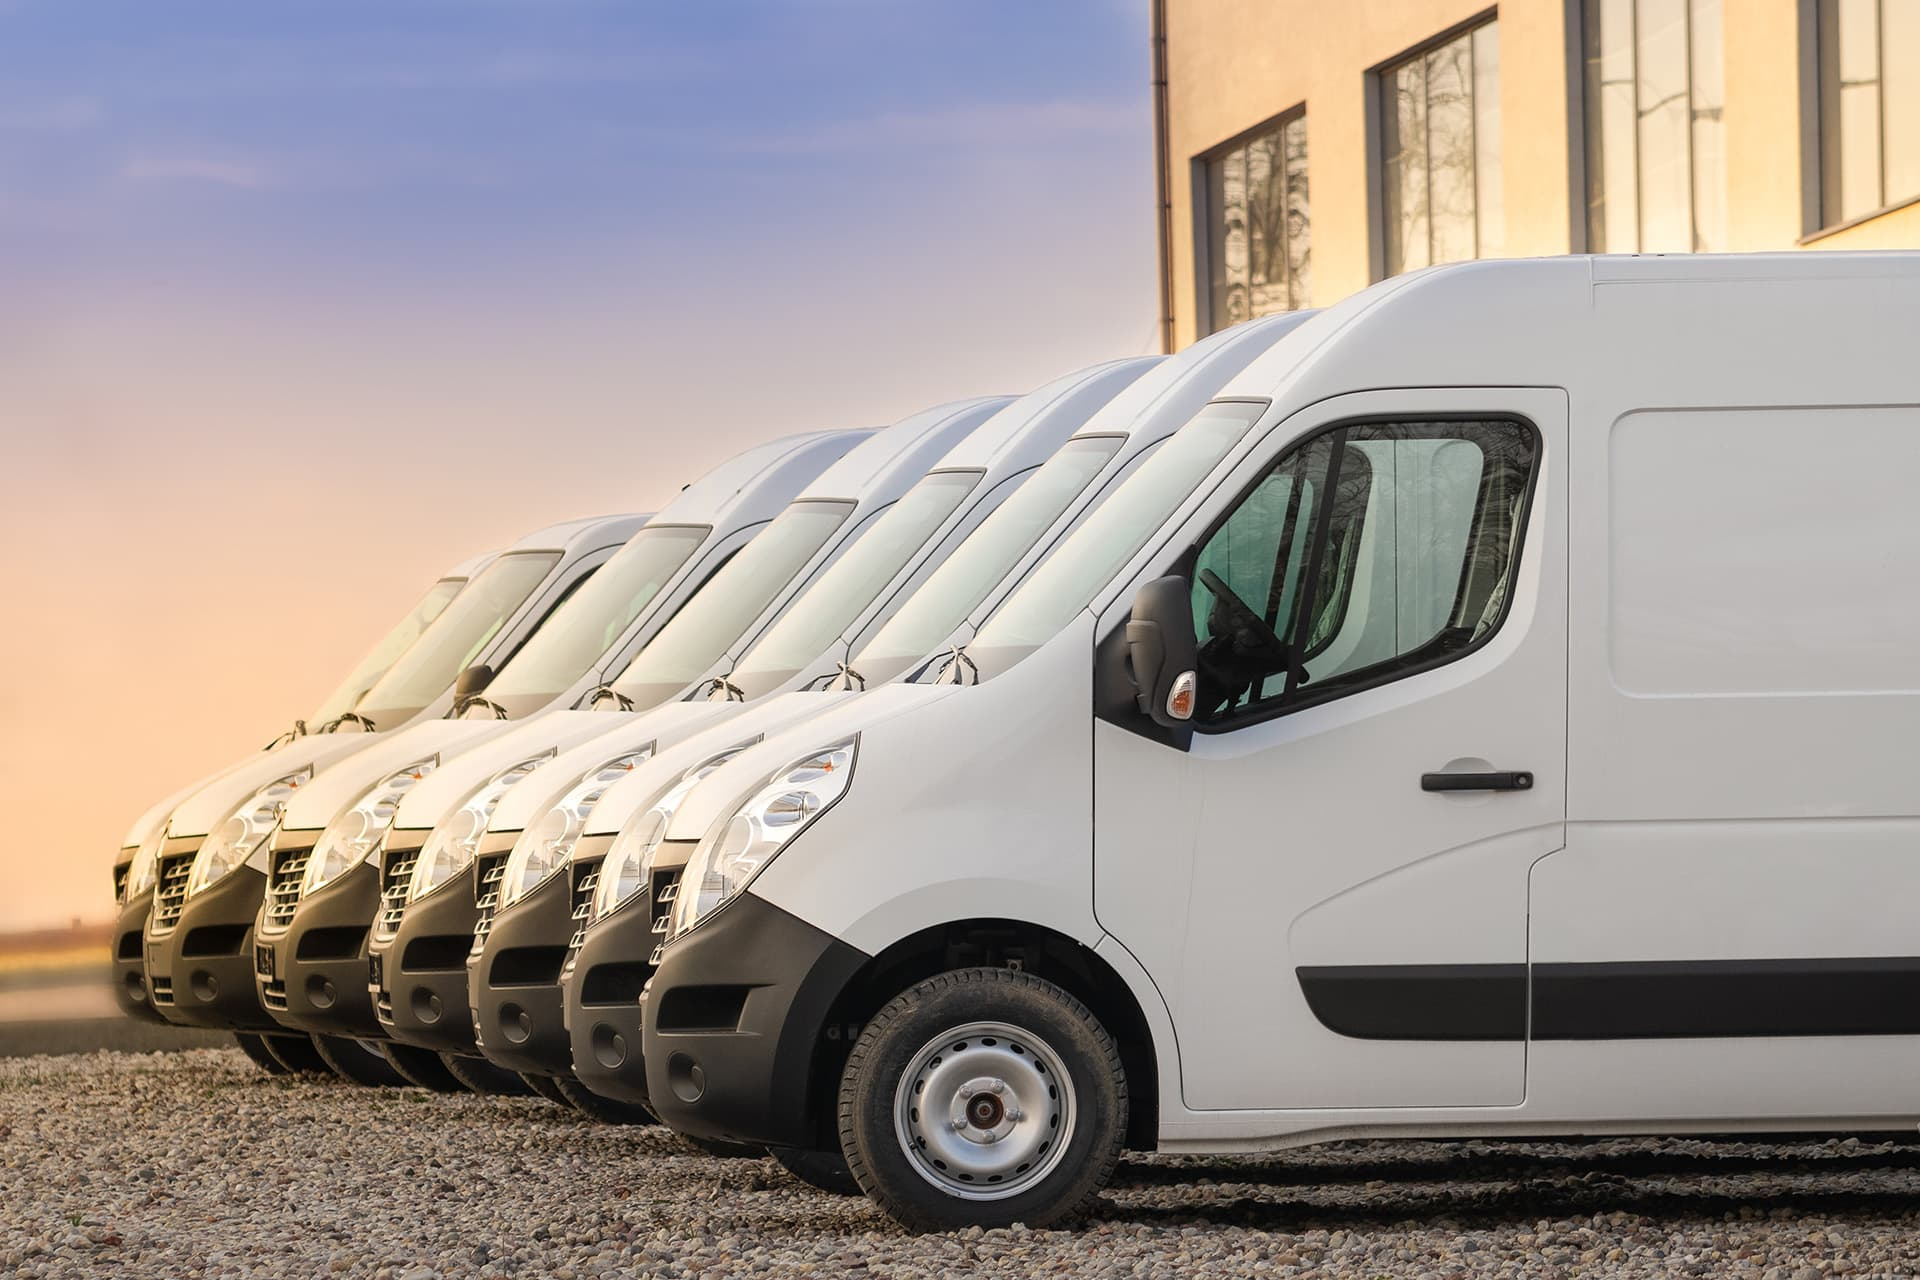 Auto fleet insurance for 7 work vans outside a building